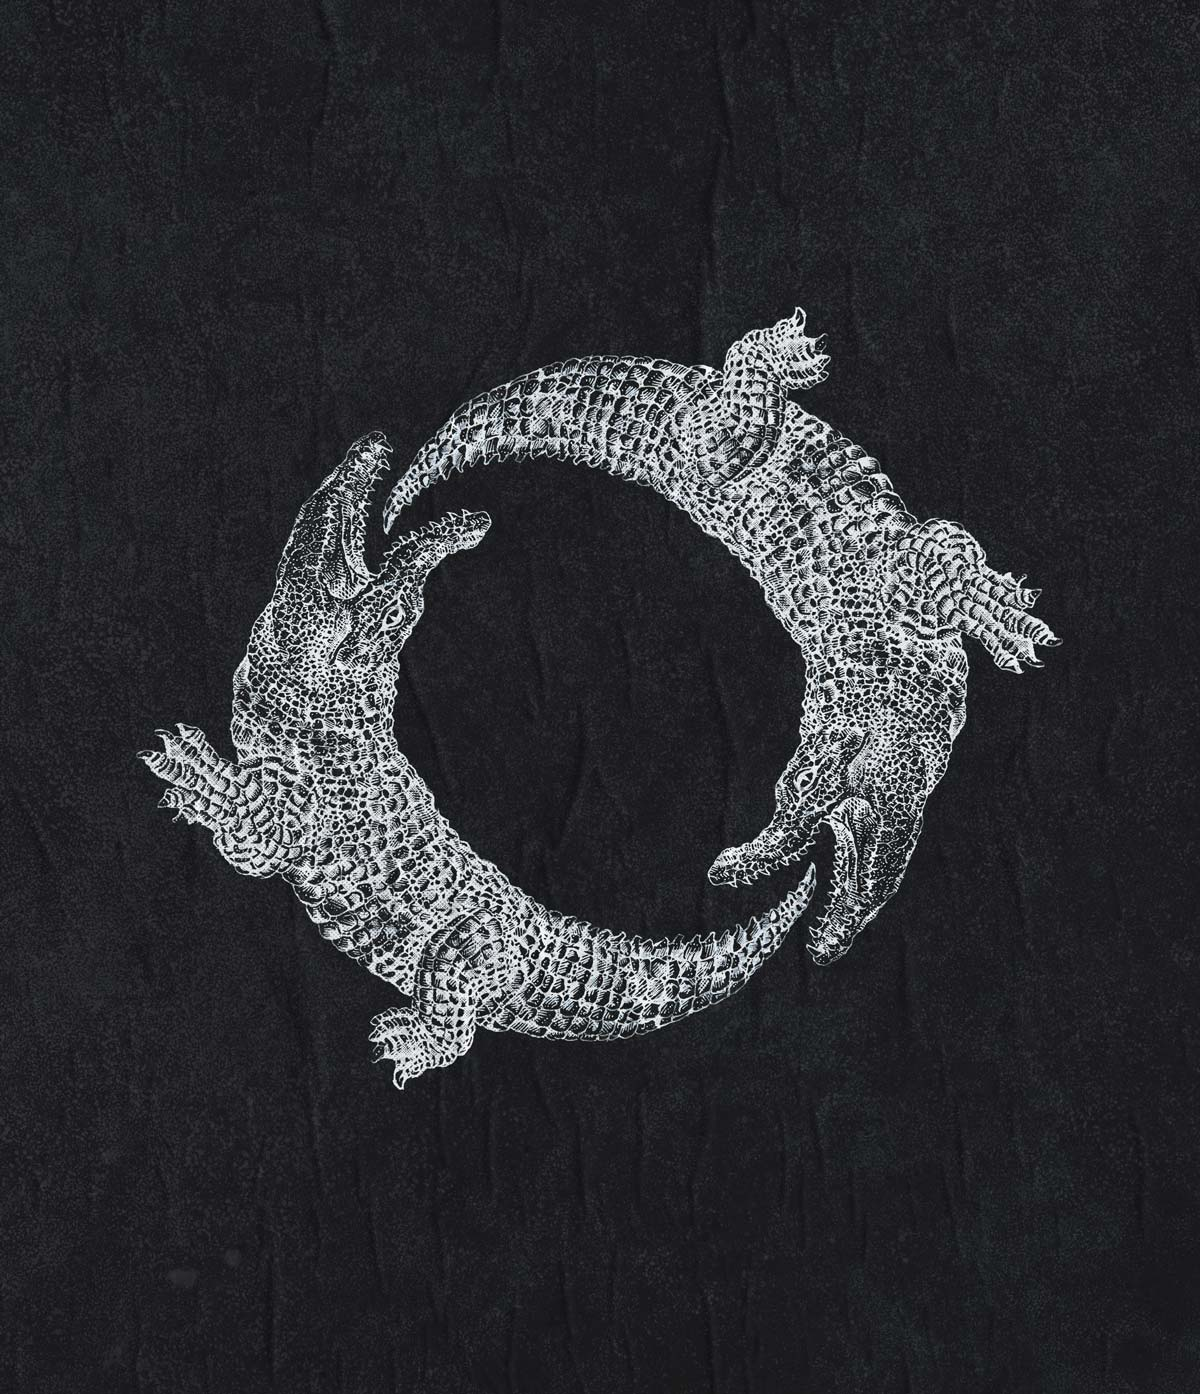 Crocodile-Ouroboros-Black